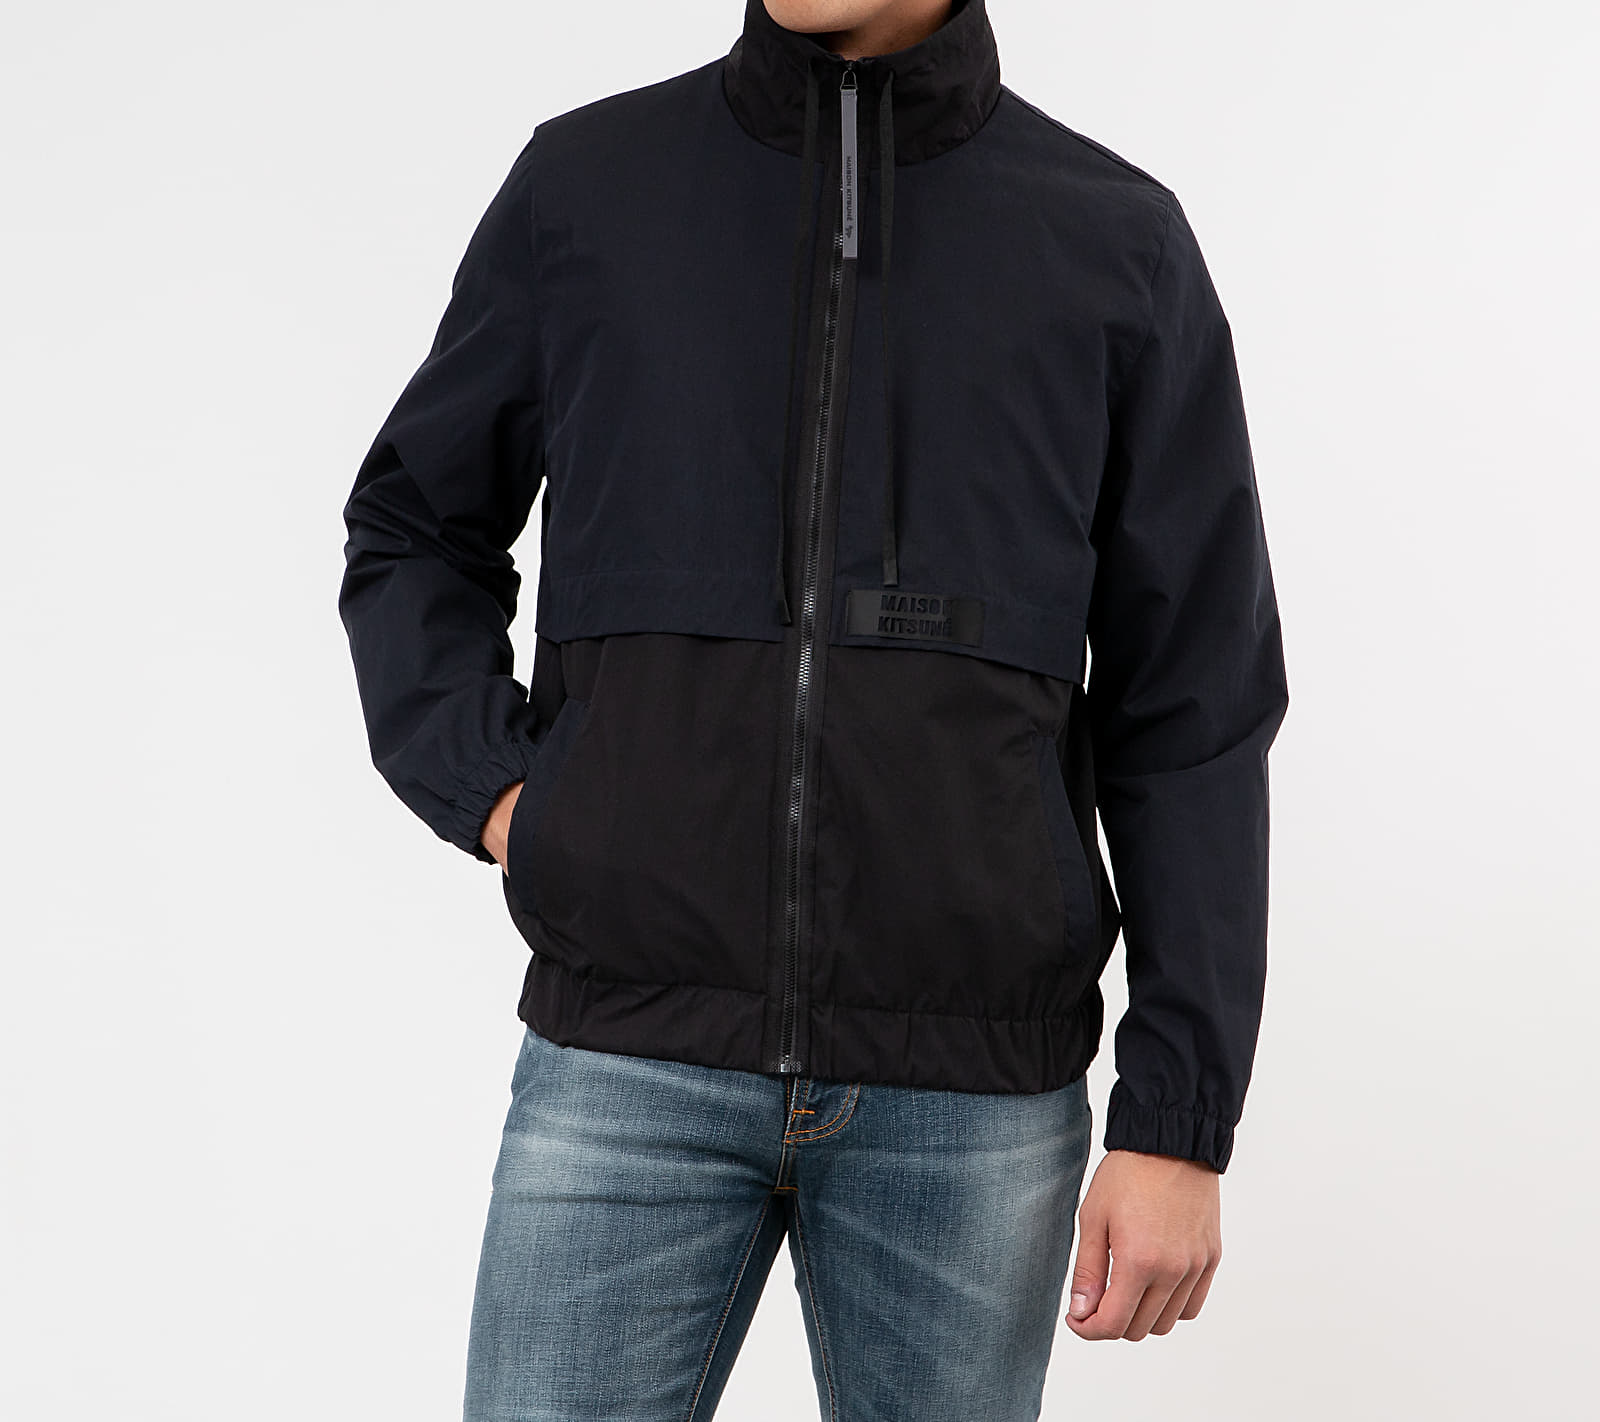 MAISON KITSUNÉ Acide Windbreaker Black/ Navy